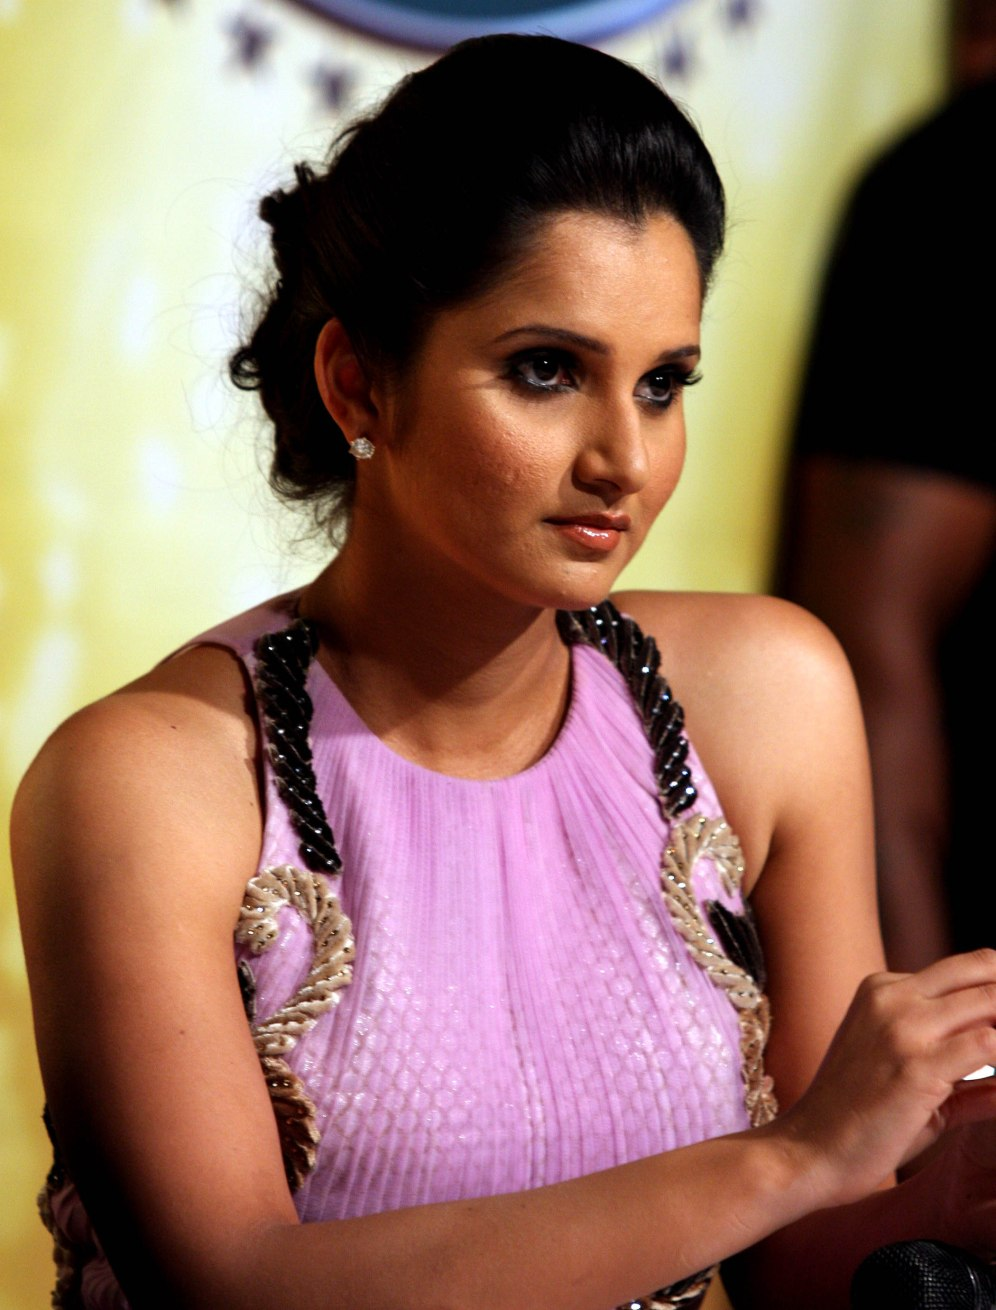 Indian Tennis player Sania Mirza unveiled as Special Jodi for Nach Baliye 5 at Filmistan Studios in Goregaon, Mumbai. (Photo: IANS)